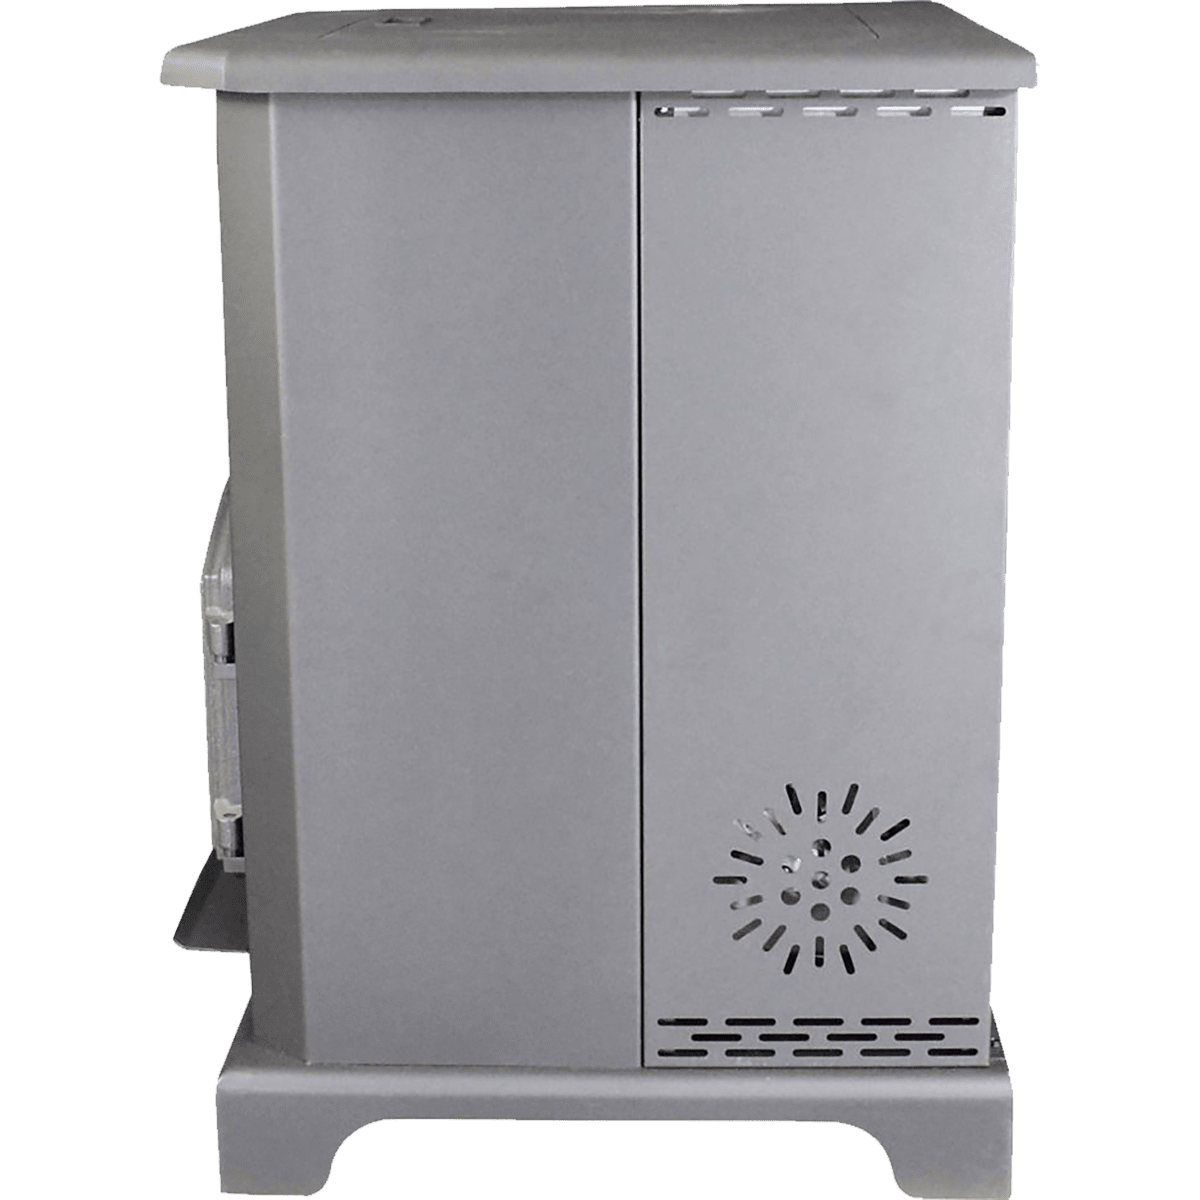 US Stove 5500M Pellet Stove - Free Shipping | Sylvane on pellet stove layouts, pellet burning stoves function diagrams, pellet stove exhaust system, pellet stove pellets, pellet stove inserts, pellet stove how it works, pellet stove installation, pellet stove troubleshooting, pellet stove maintenance, pellet stove thermostat wiring, pellet stove window unit, gas stove wiring diagrams, pellet stove parts, pellet stove igniter, pellet stoves how they work, pellet stove heat recovery, pellet stove control panel, pellet stove dimensions, pellet stoves in-house, pellet stove fuses,